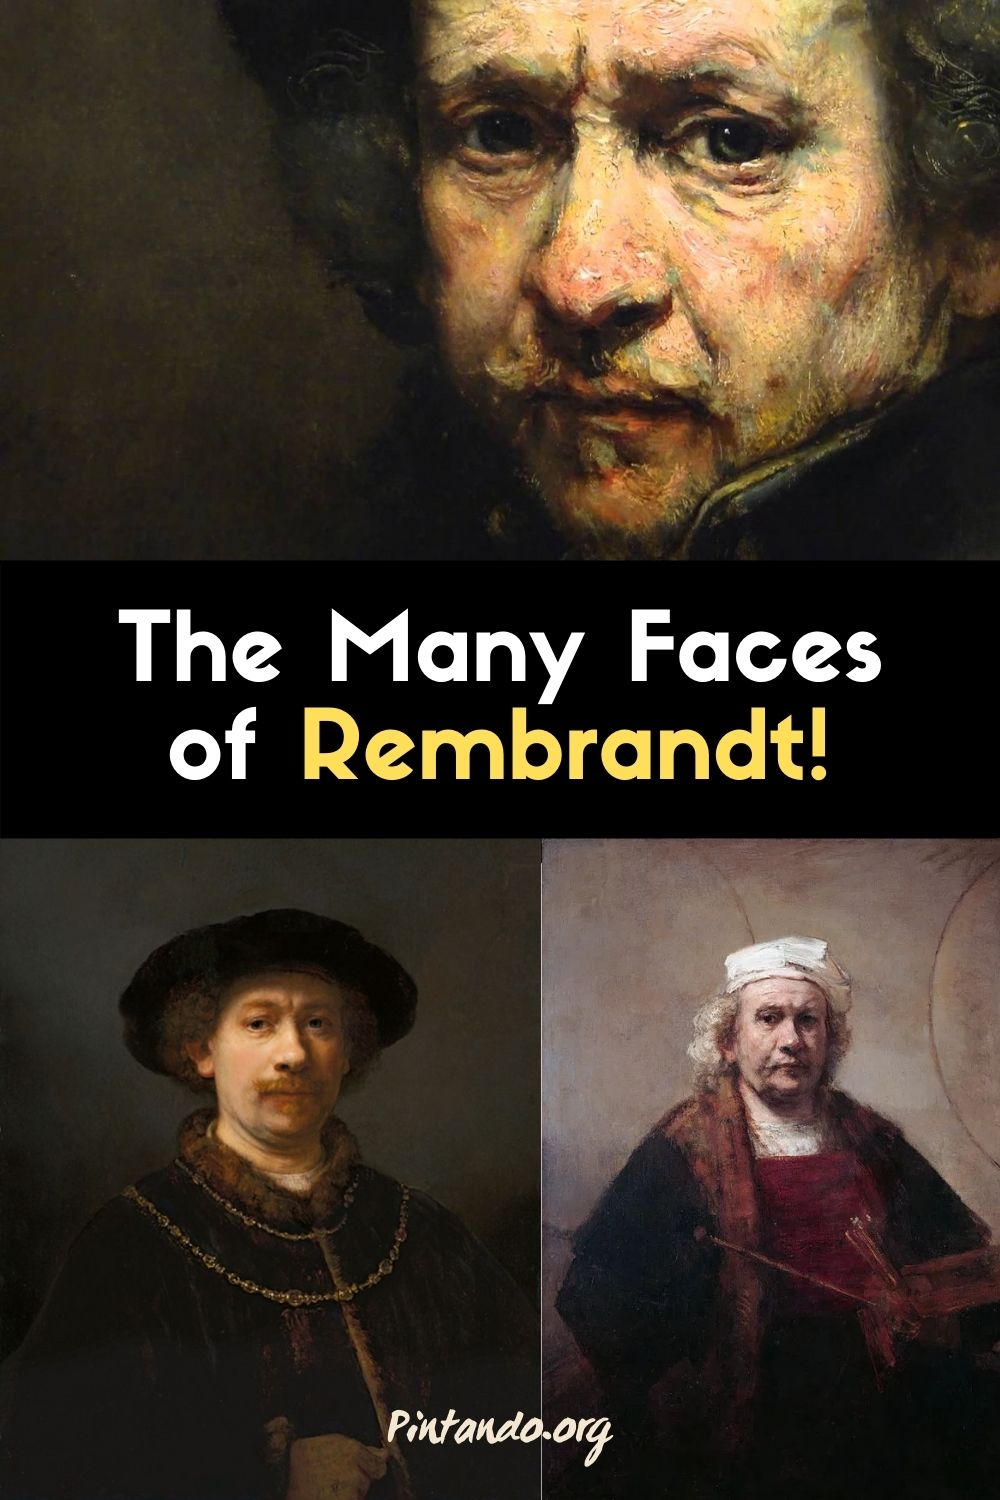 The Many Faces of Rembrandt!